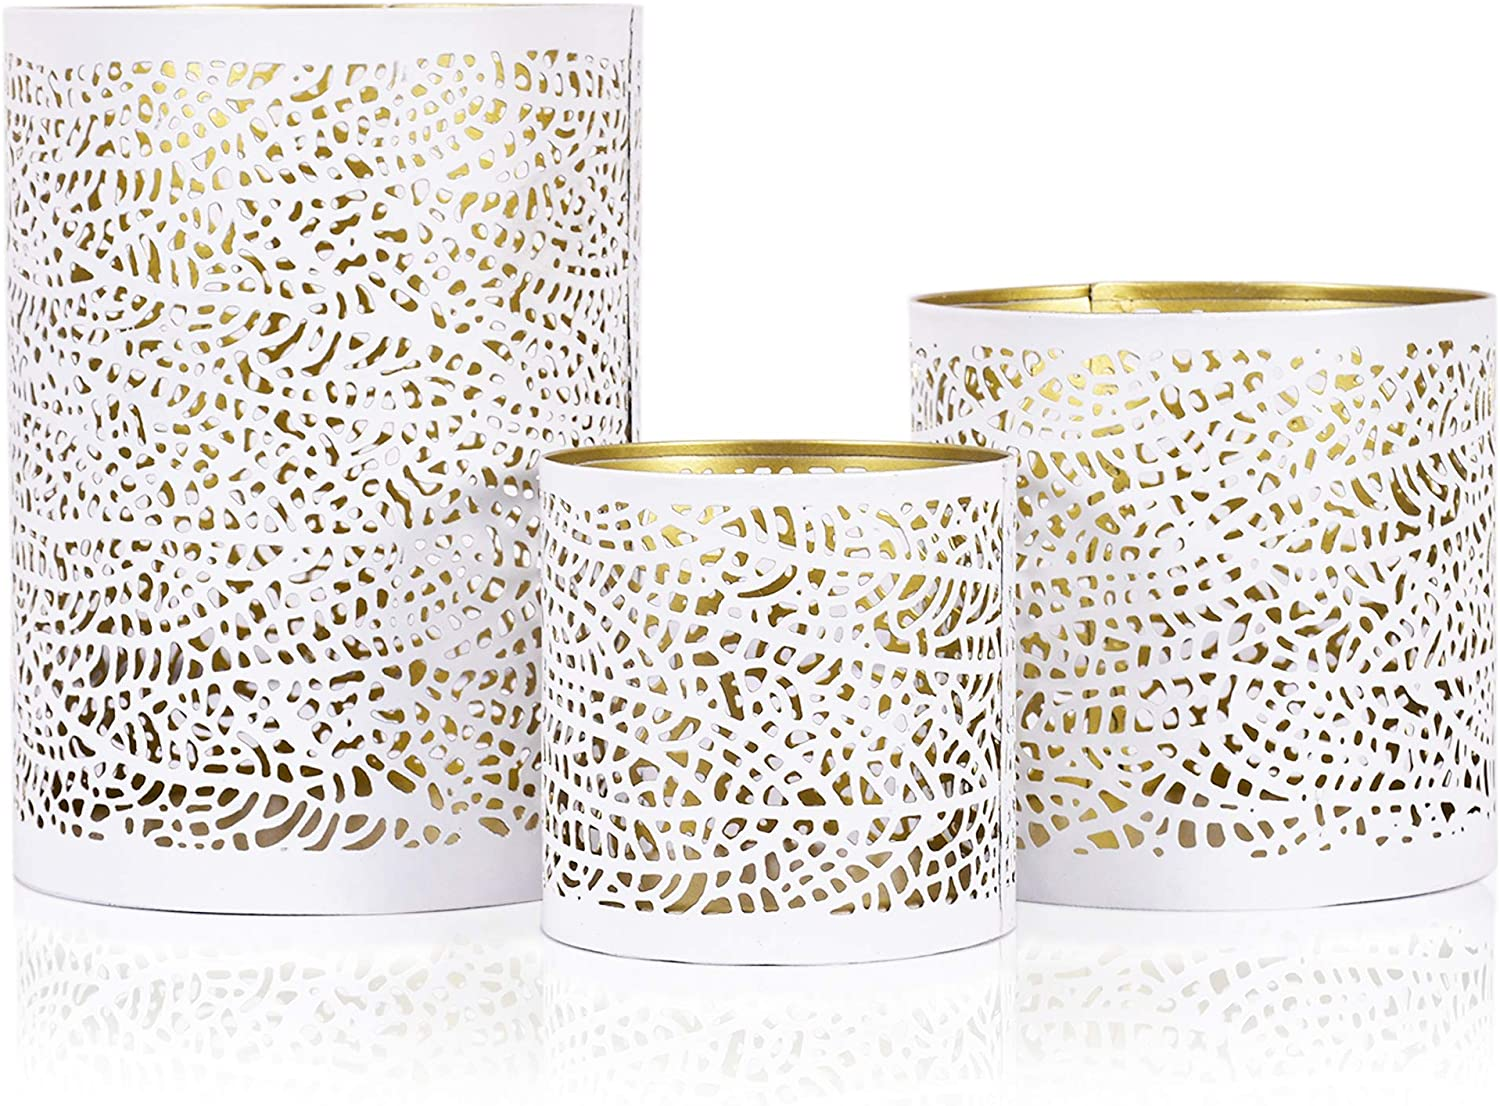 Lazy Max 57% OFF Year-end gift Gifts Set of 3 White Hurr Metal Nesting and Gold Decorative